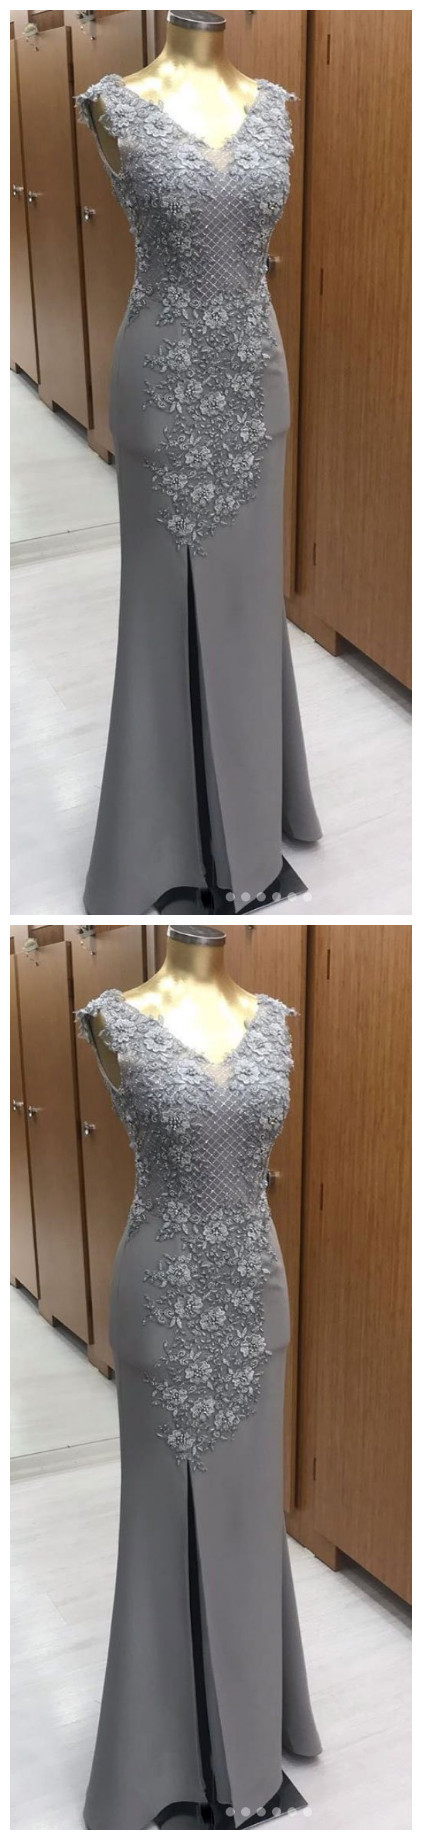 V Neck Chiffon Lace Long Prom Dress. Gray Evening Dress P2252